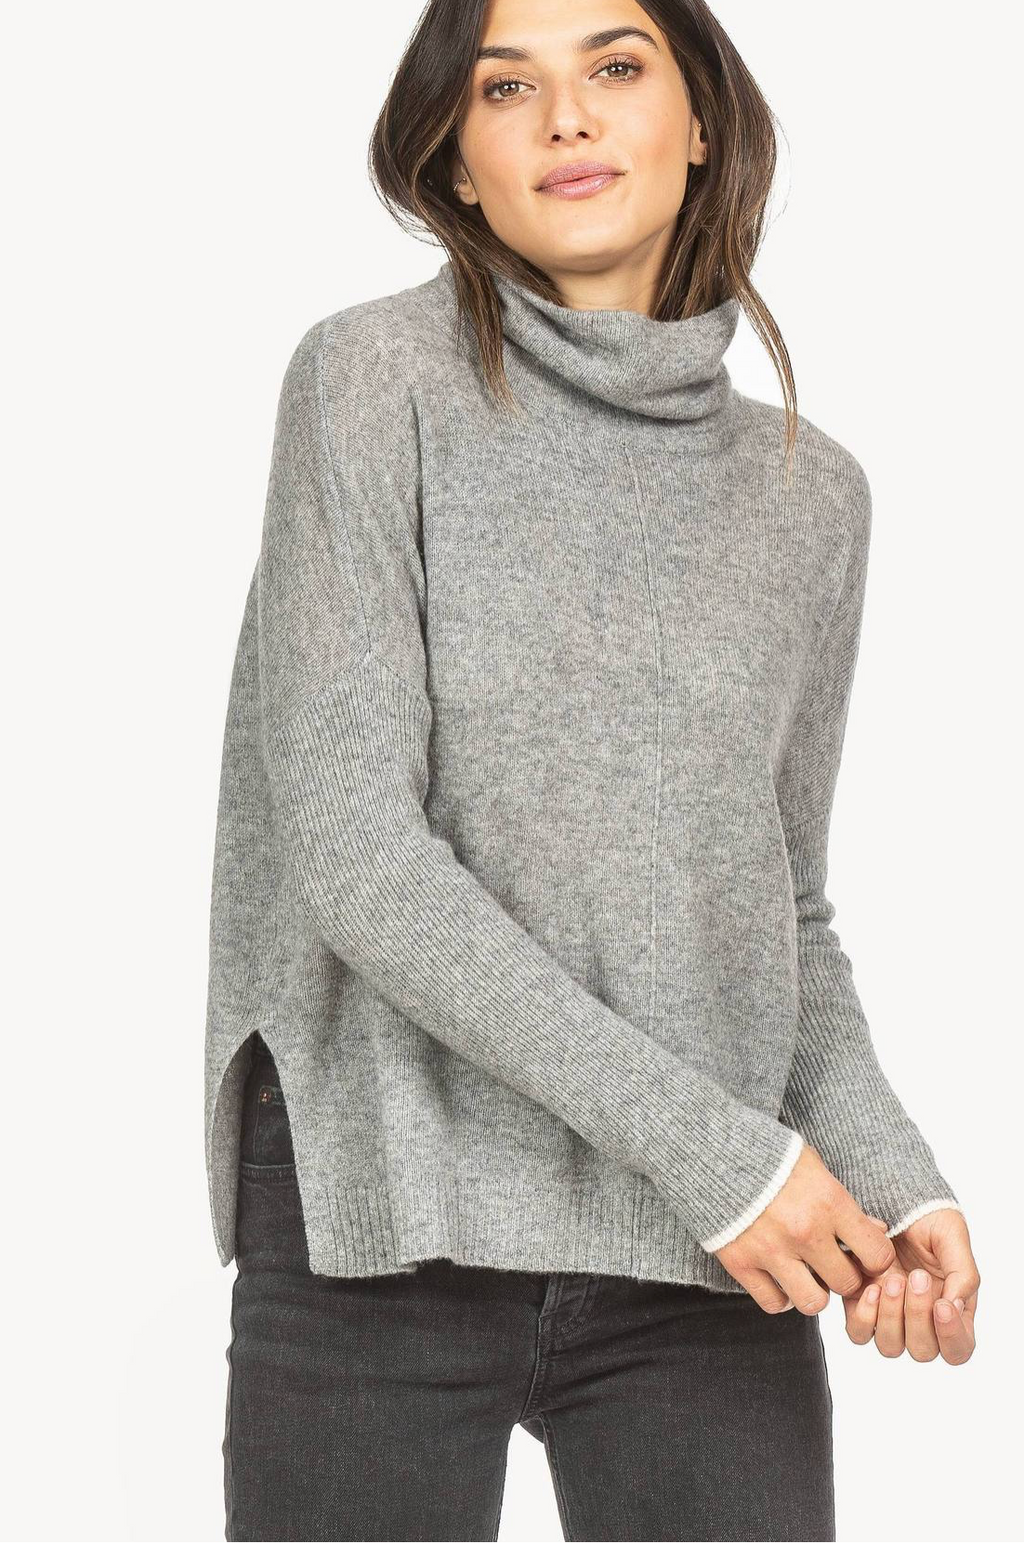 100% Cashmere Ribbed Sleeve Turtleneck Sweater